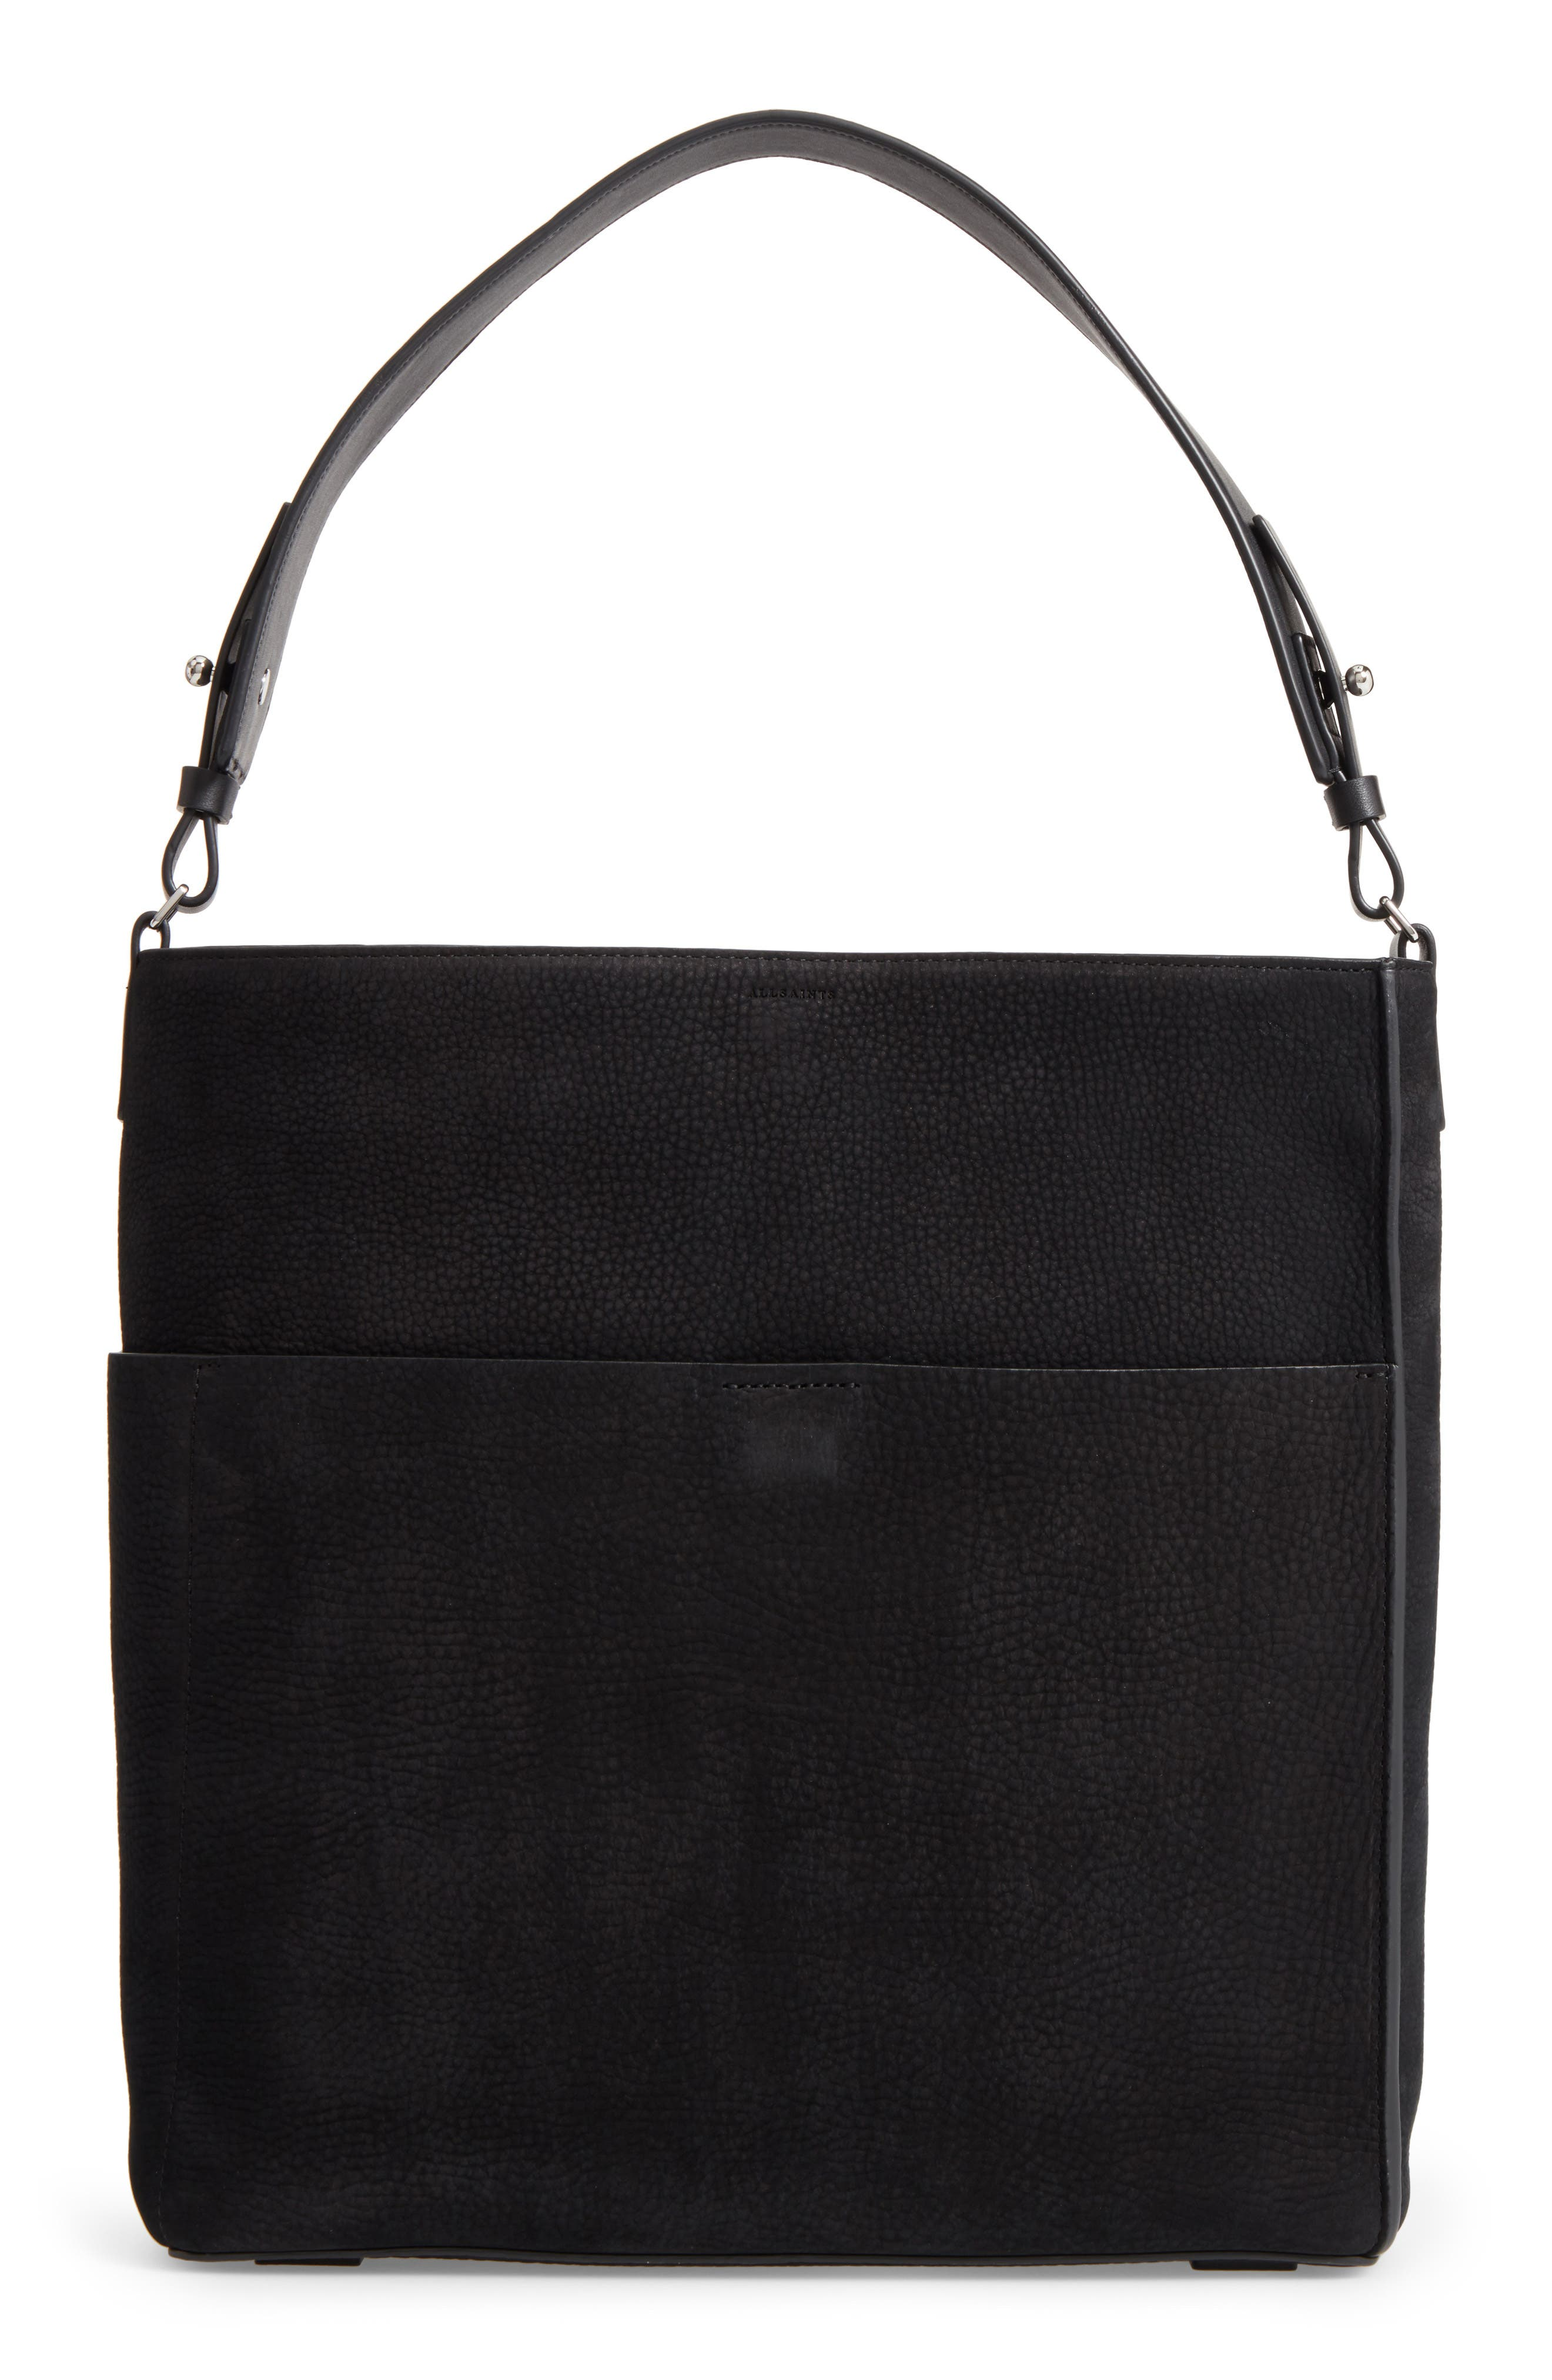 ALLSAINTS Echo North/South Calfskin Tote